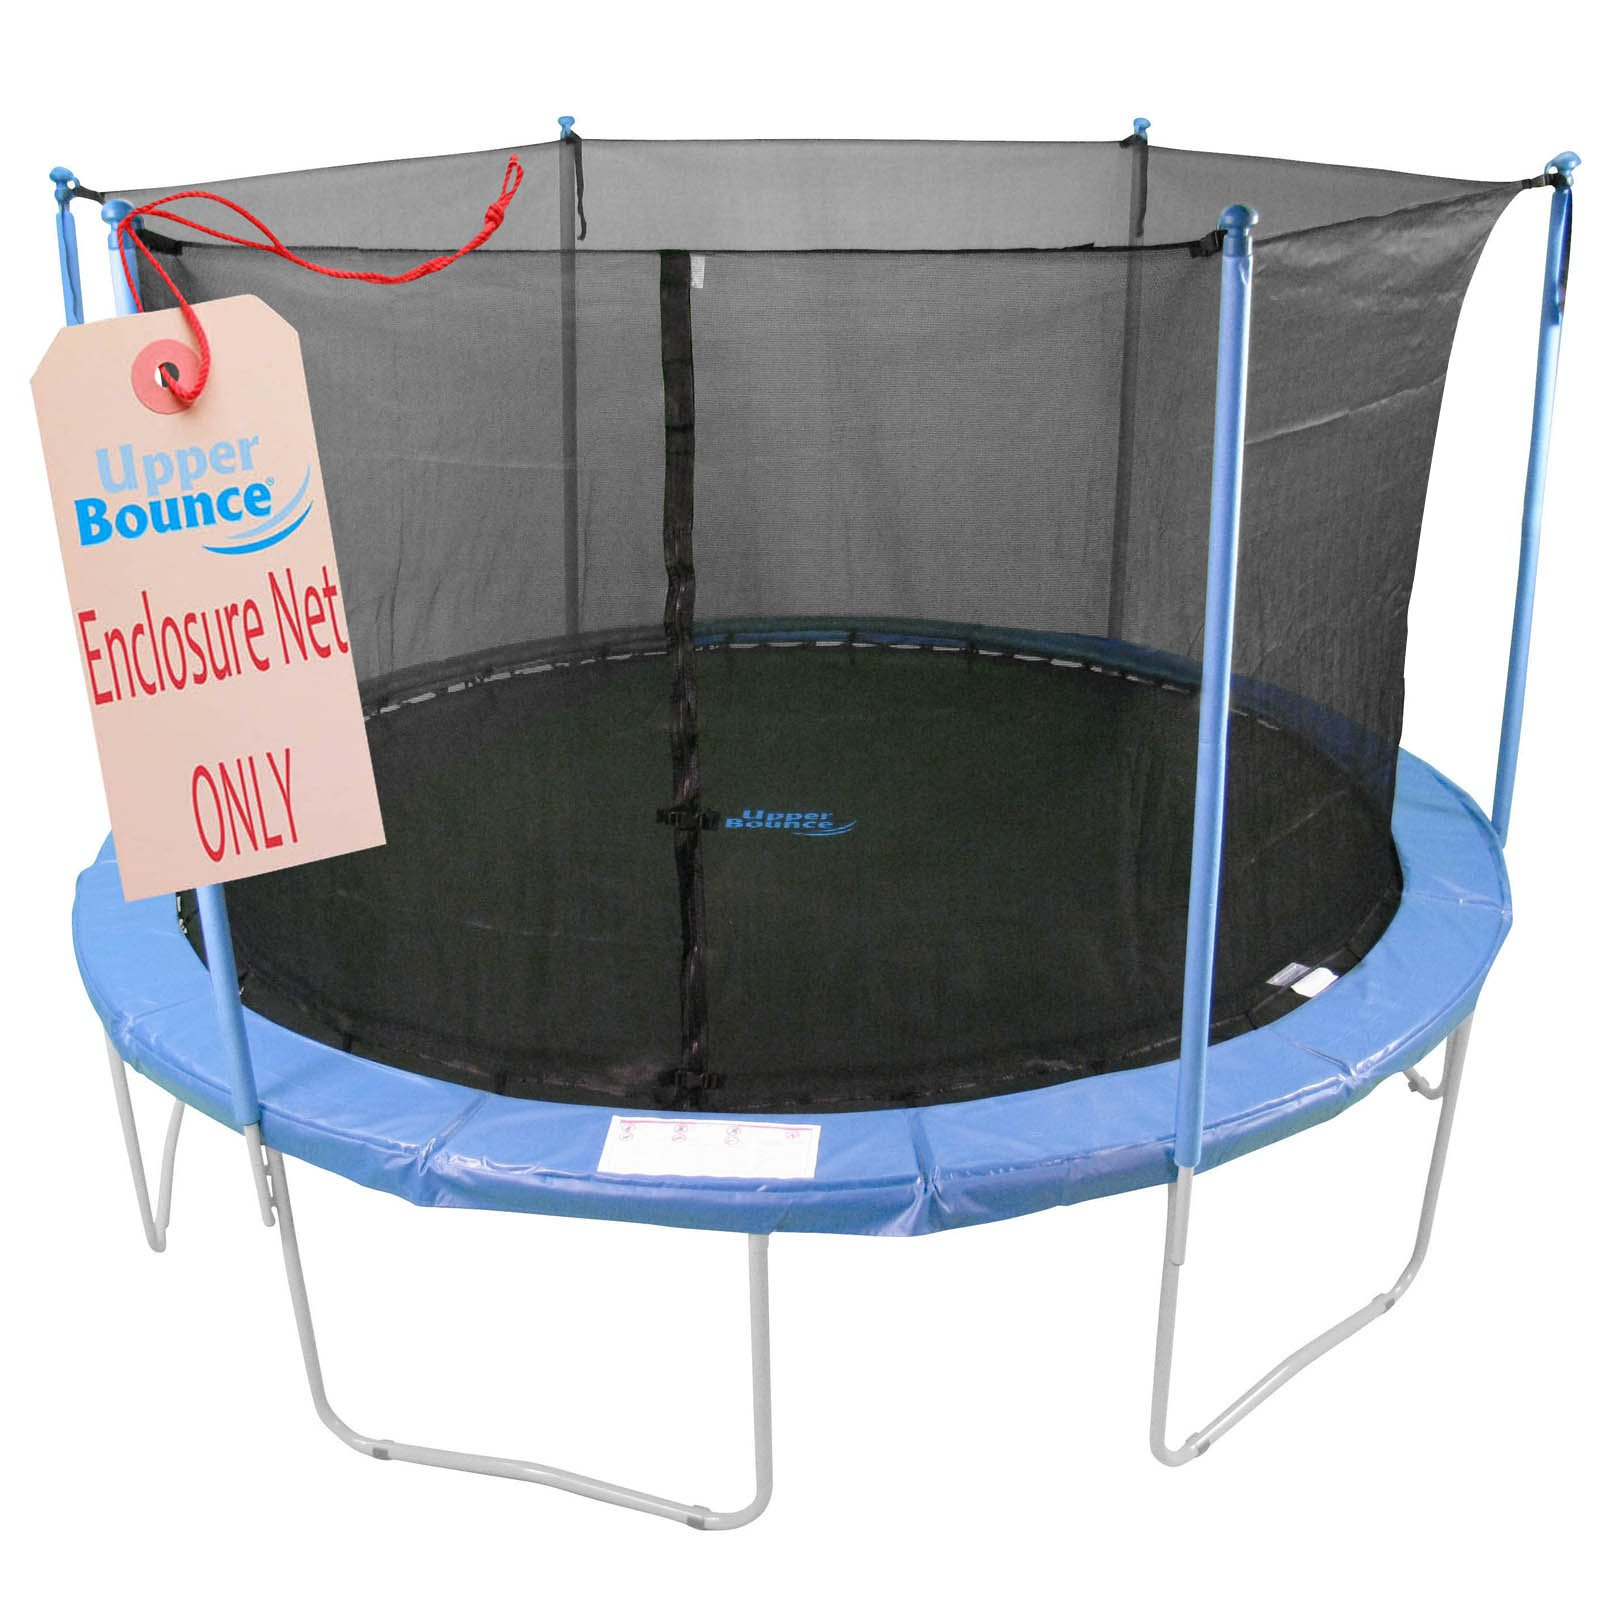 Upper Bounce Trampoline Replacement Enclosure Net, Fits for 7.5 FT. Round Frames, with Adjustable Straps, Using 6 Poles or 3 Arches - Net Only by Upper Bounce